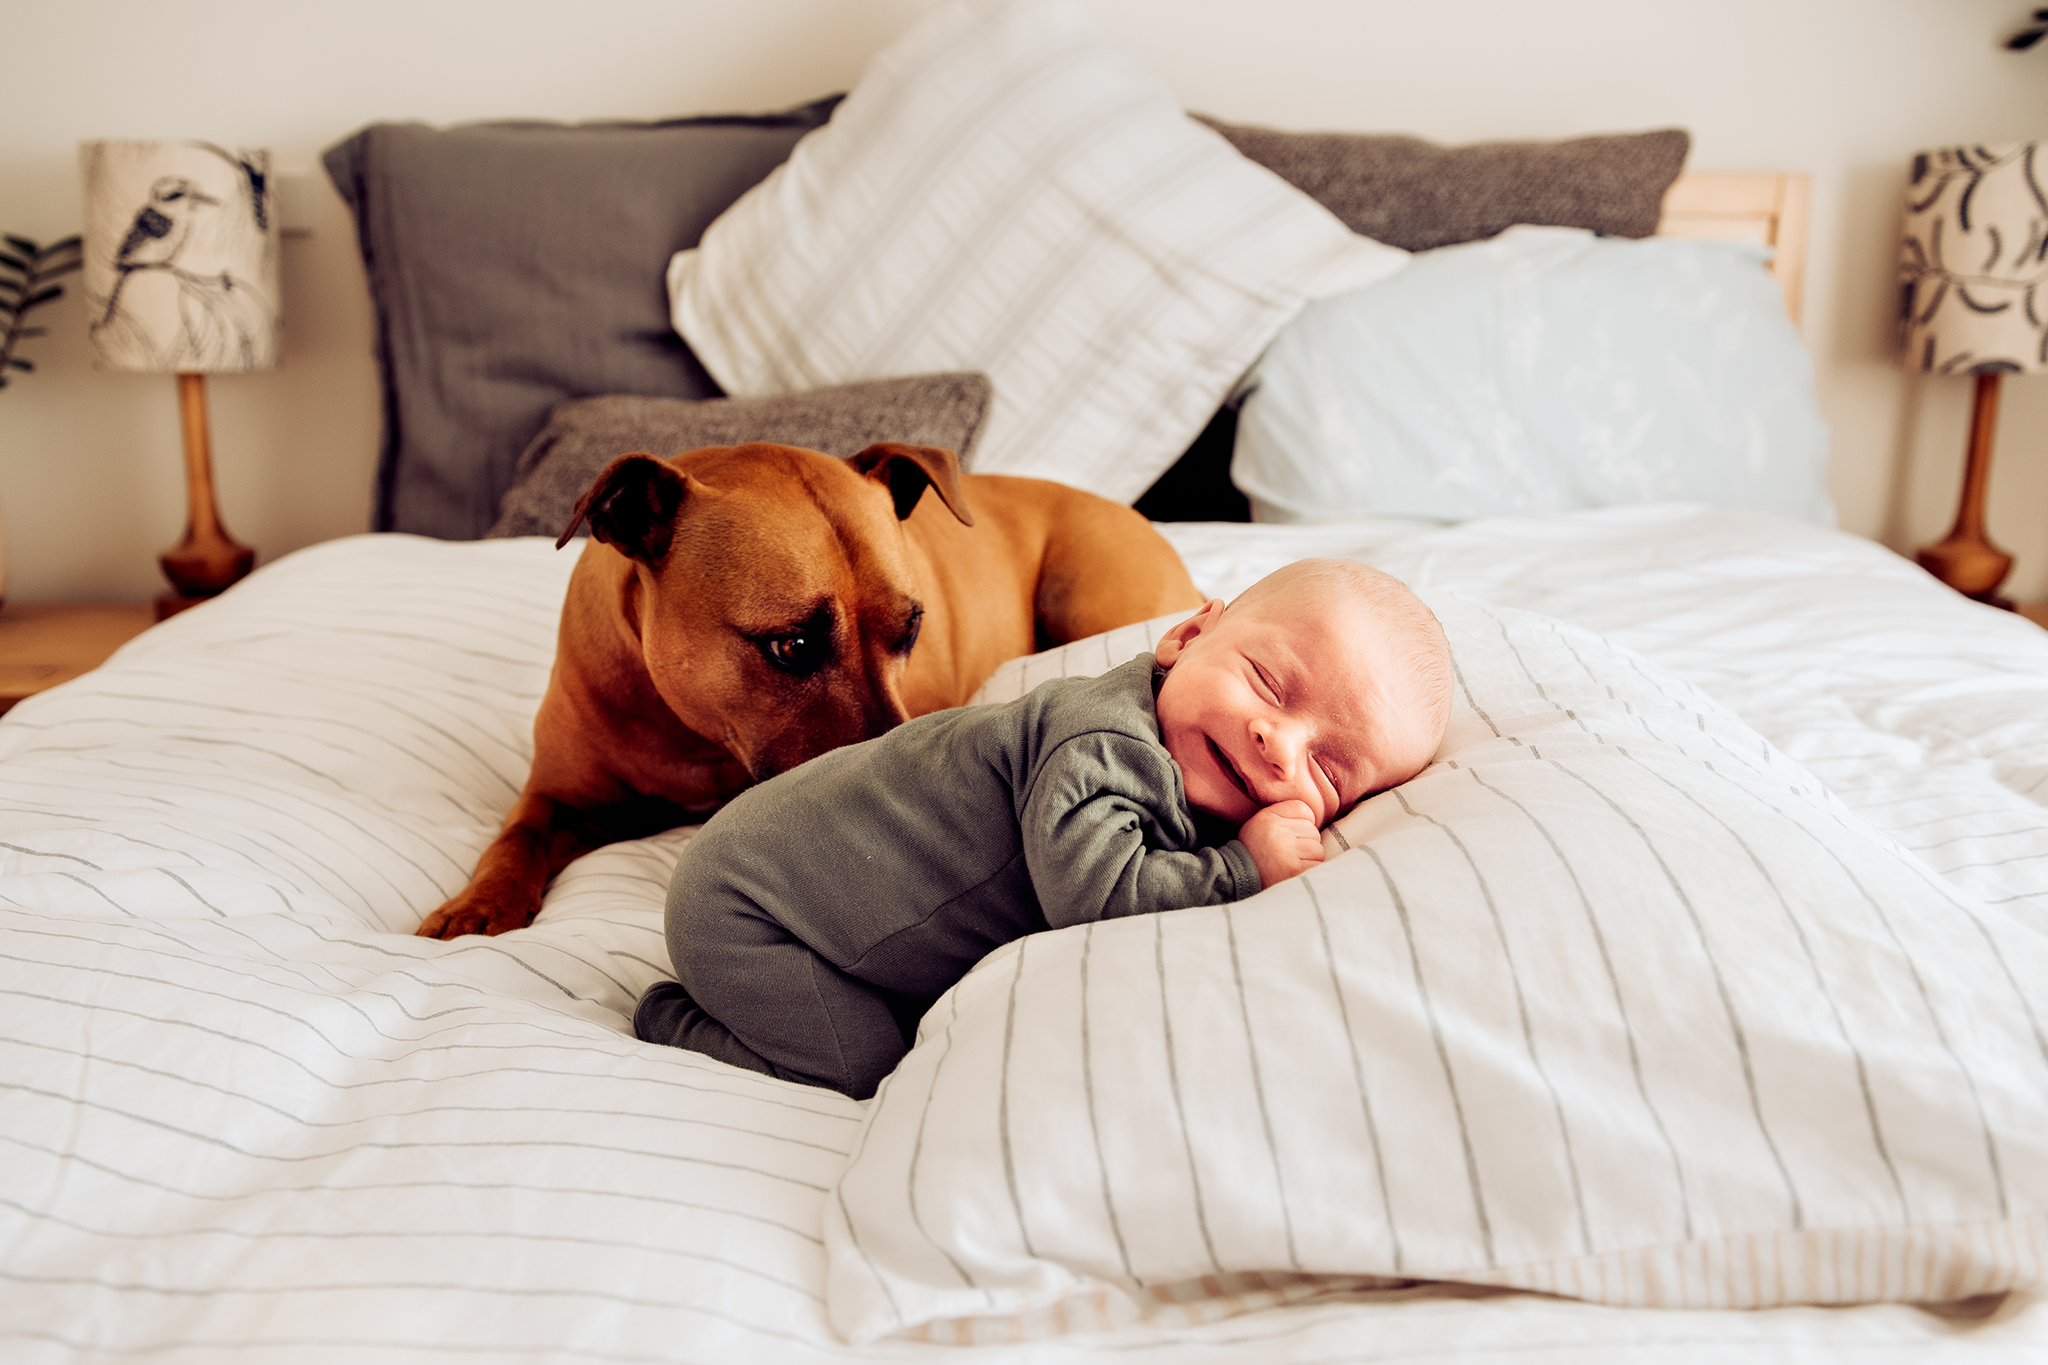 canberra newborn photographer baby and puppy on bed